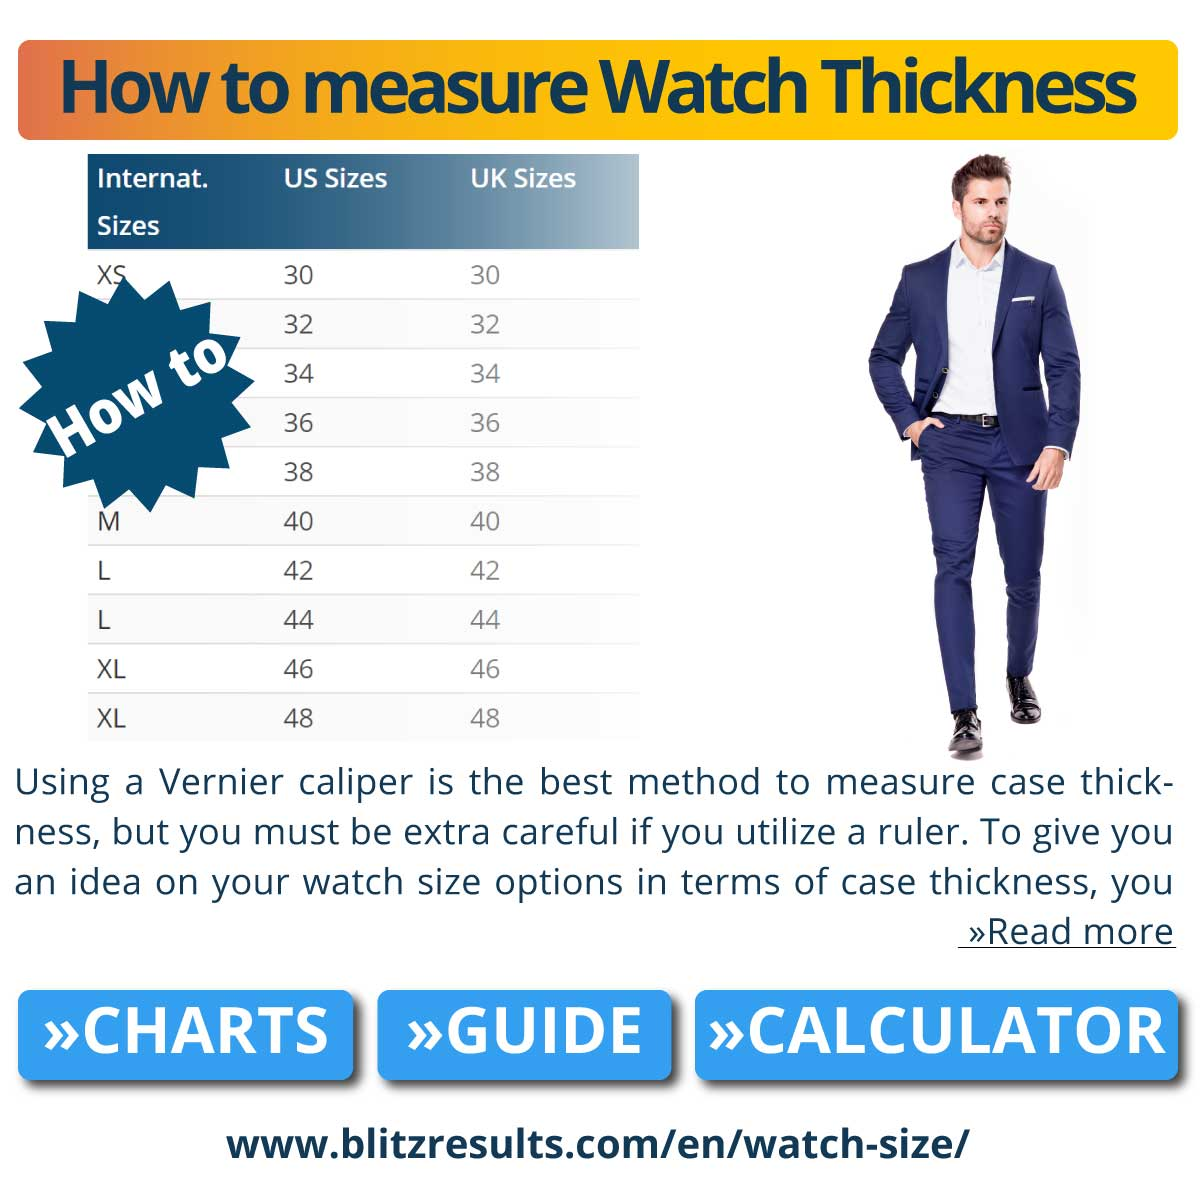 How to measure Watch Thickness